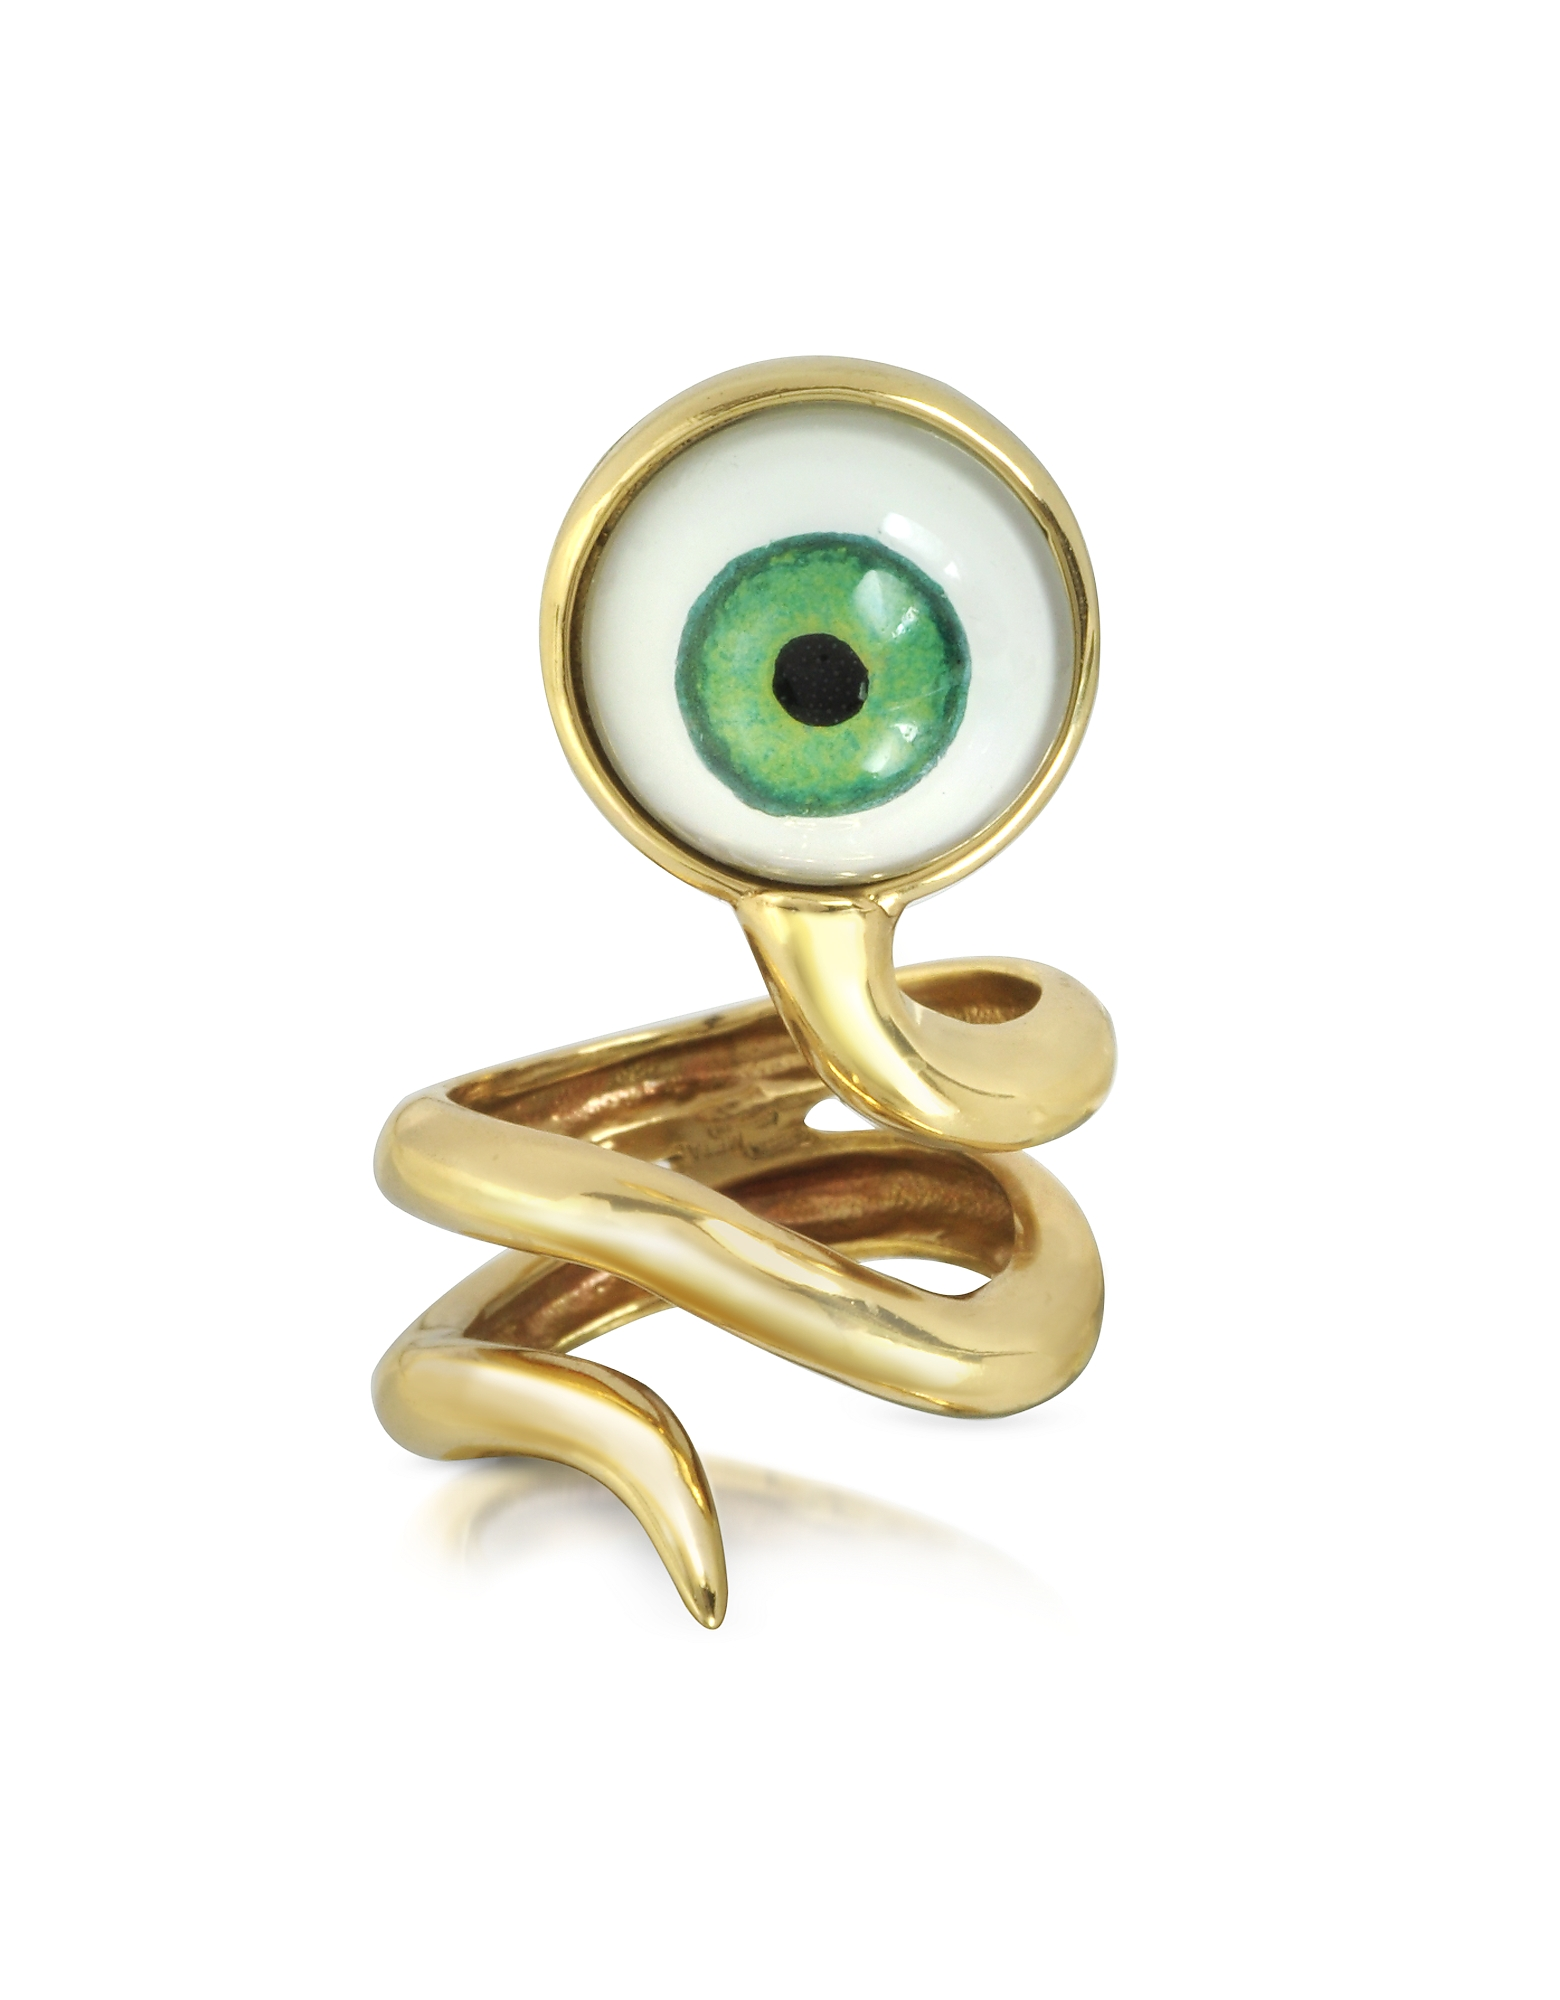 Bernard Delettrez Rings, Bronze Snake Ring With Eye